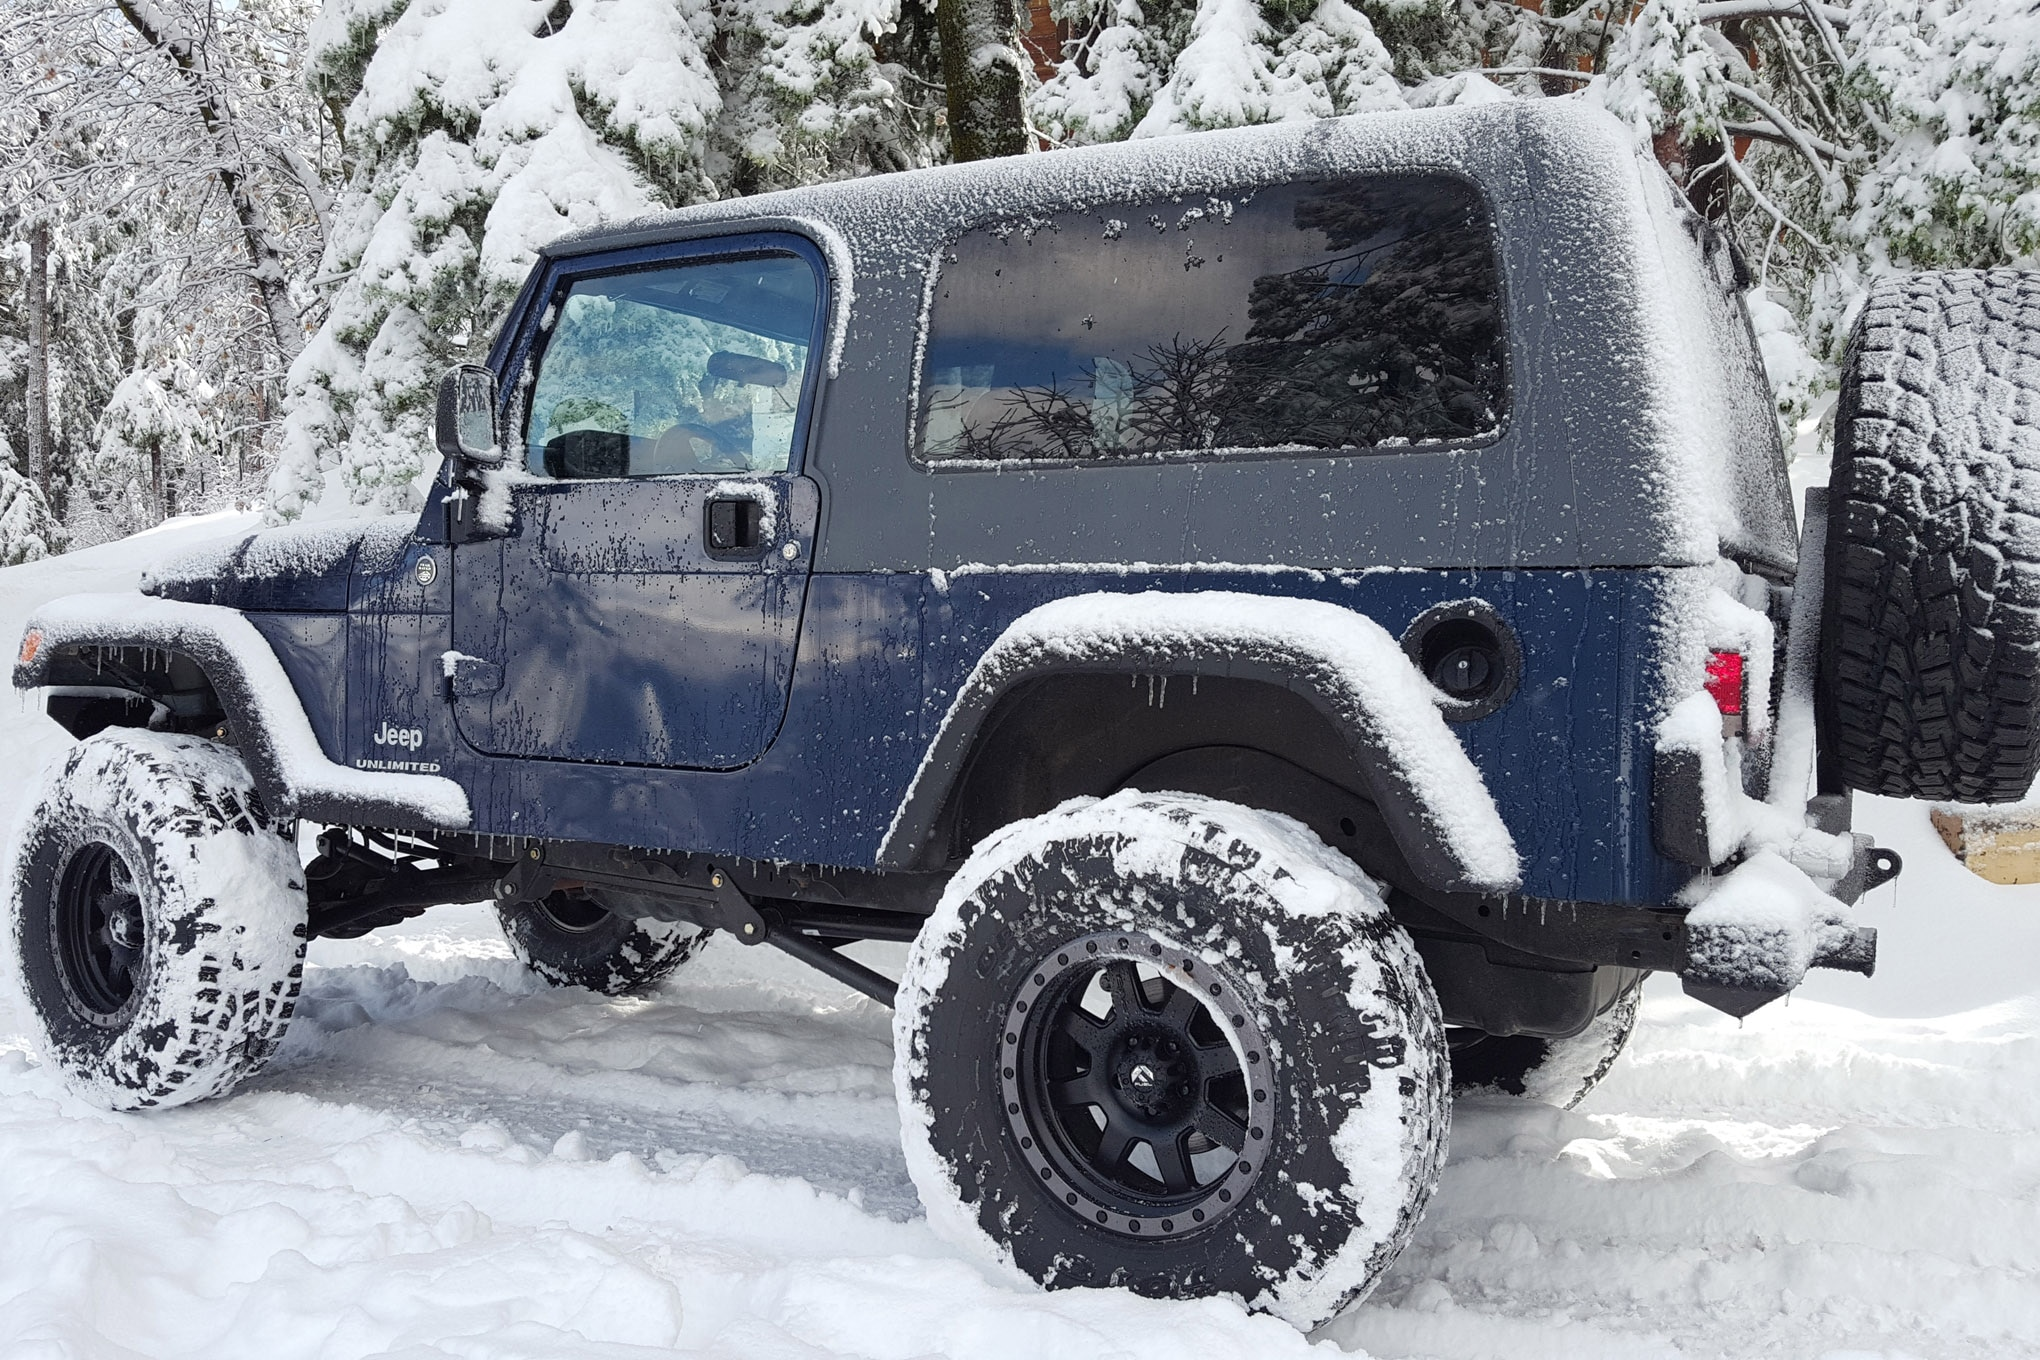 Jeep Shots 2006 Jeep Wrangler Unlimited Lj Blue Snow Photo 137583184